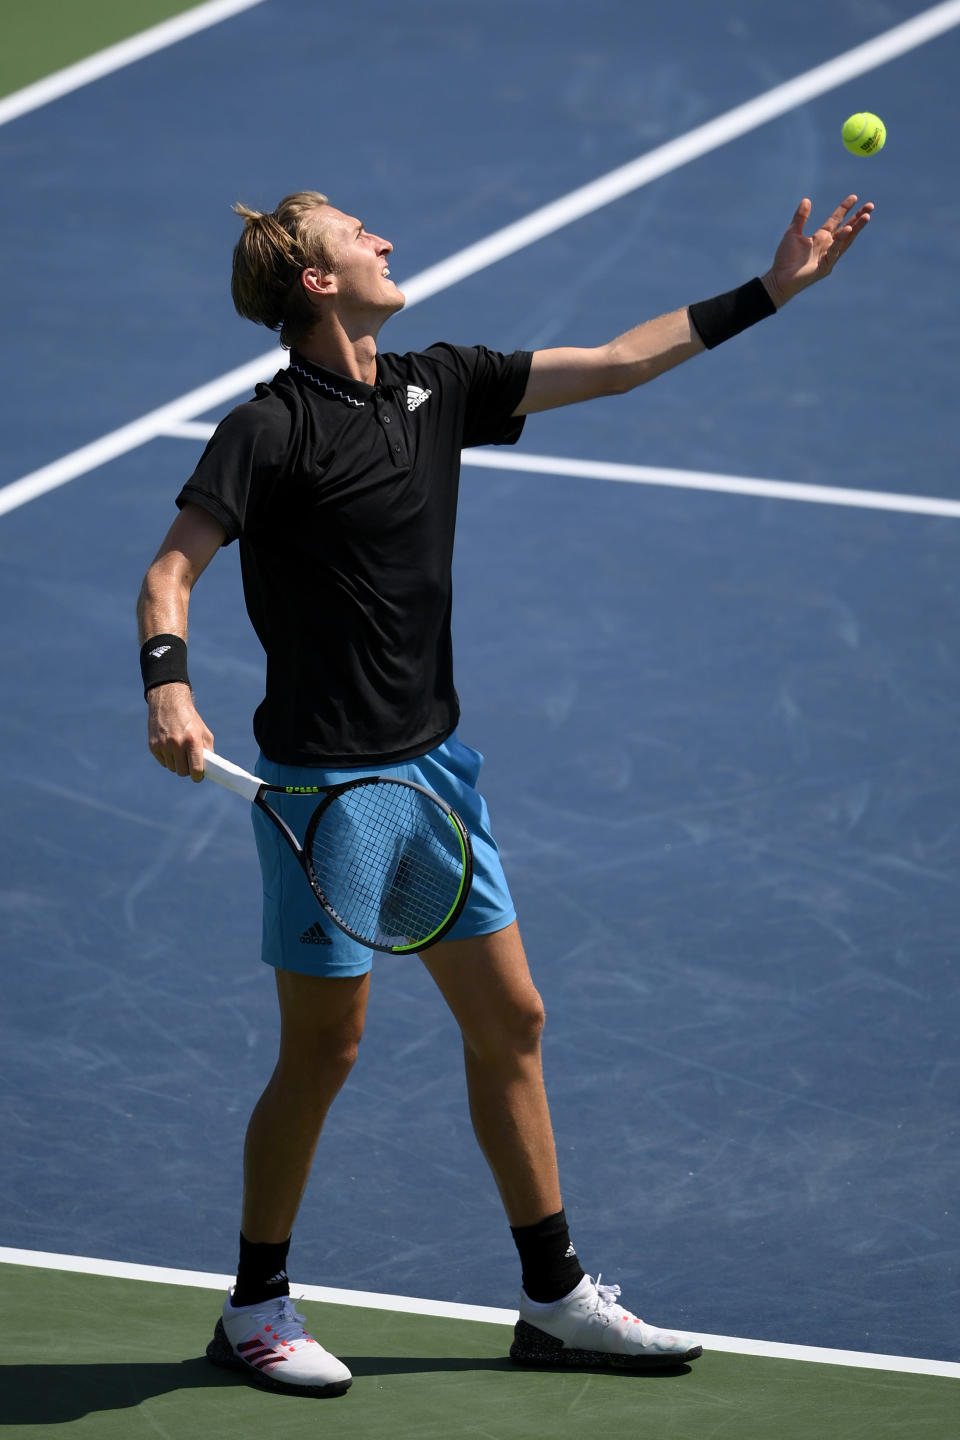 Sebastian Korda tosses the ball to serve against Jannik Sinner, of Italy, during a match at the Citi Open tennis tournament, Thursday, Aug. 5, 2021, in Washington. (AP Photo/Nick Wass)